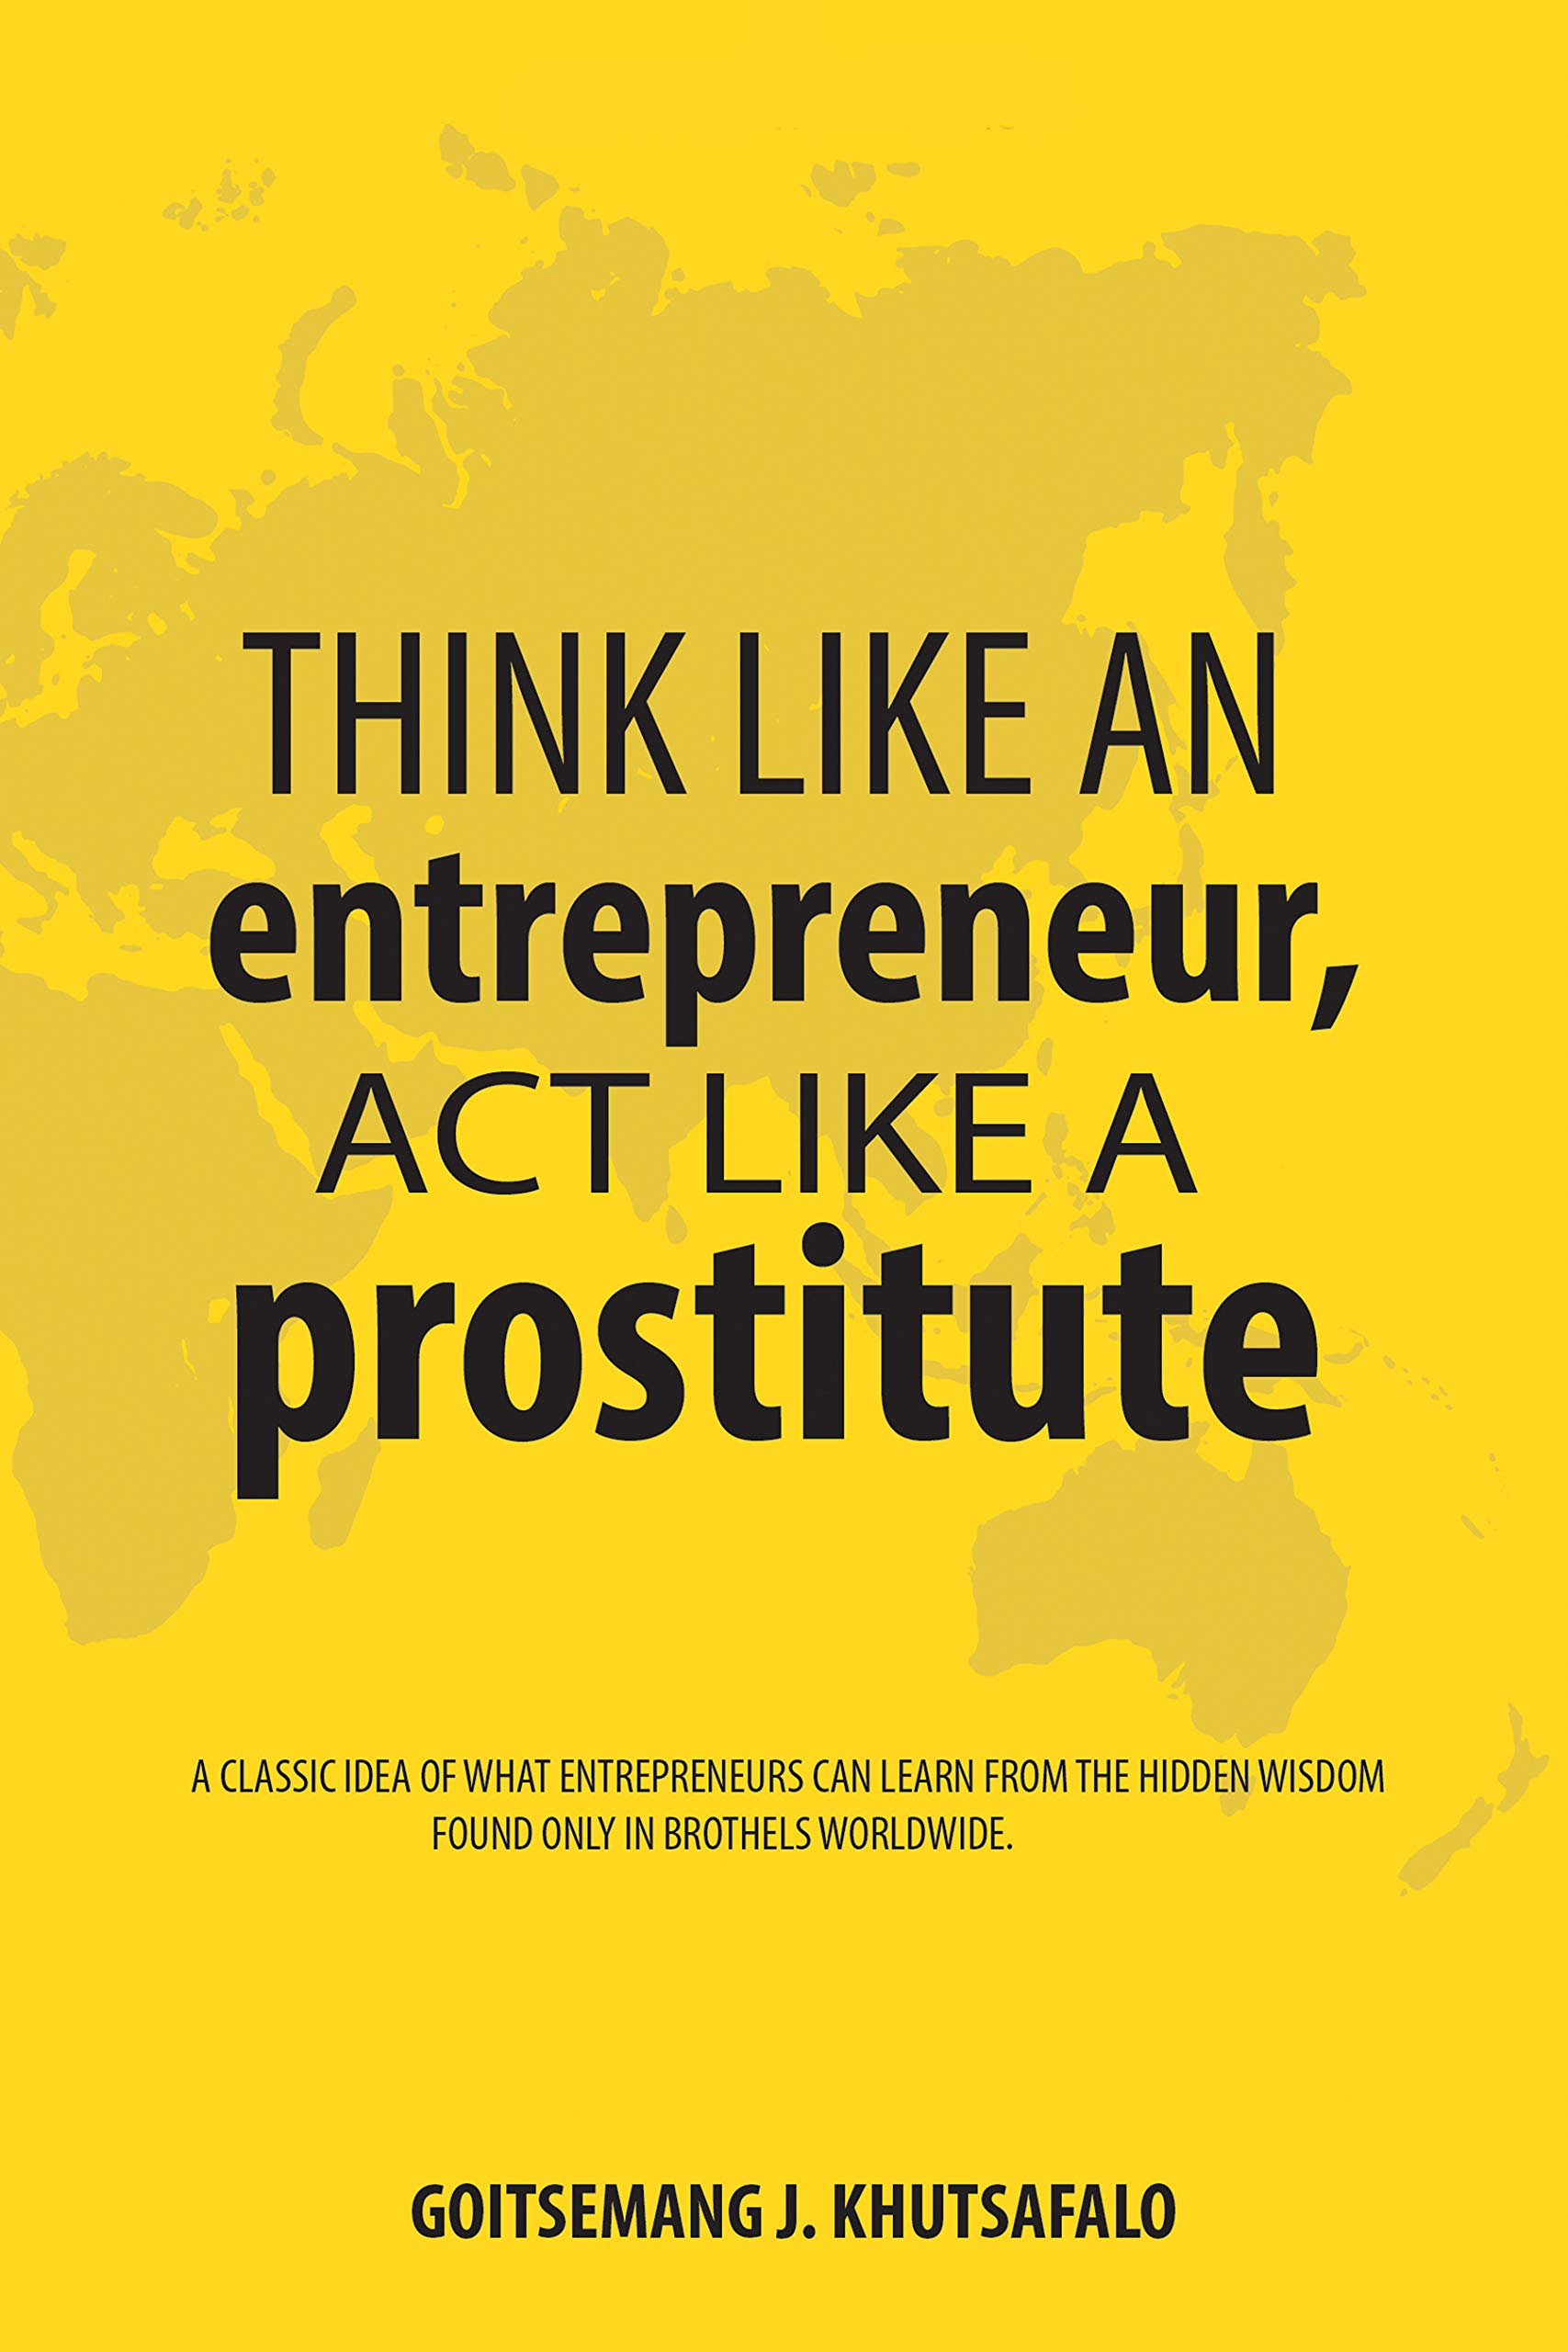 Think like an Entrepreneur, Act like a Prostitute: A classic idea of what entrepreneurs can learn from the hidden wisdom found only in brothels worldwide